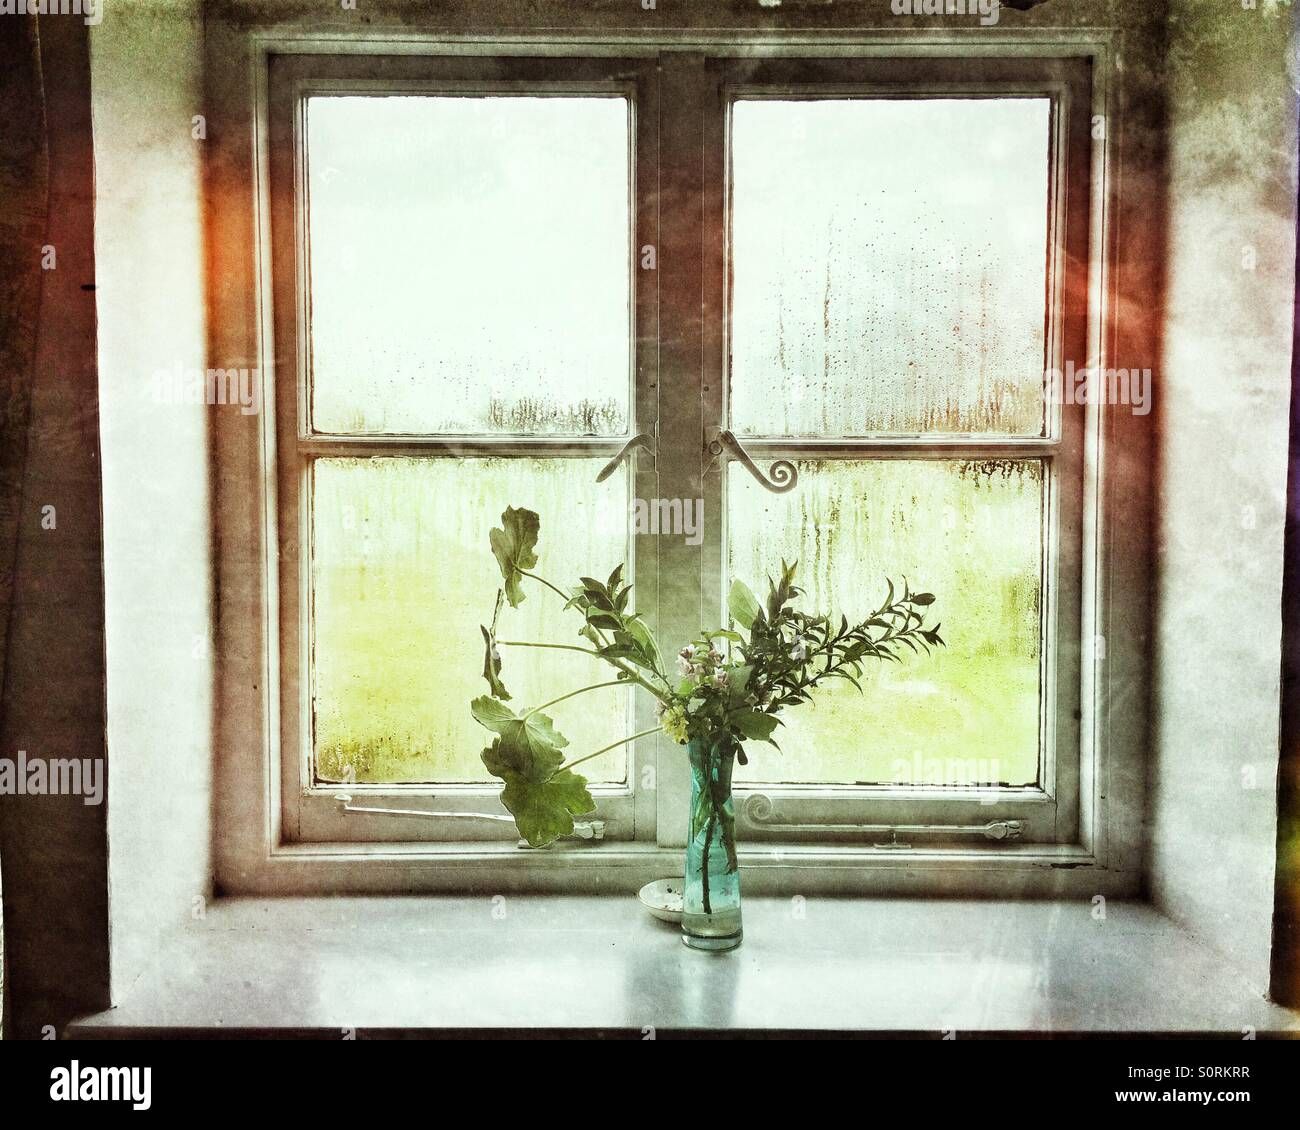 A vase of flowers at a window Stock Photo